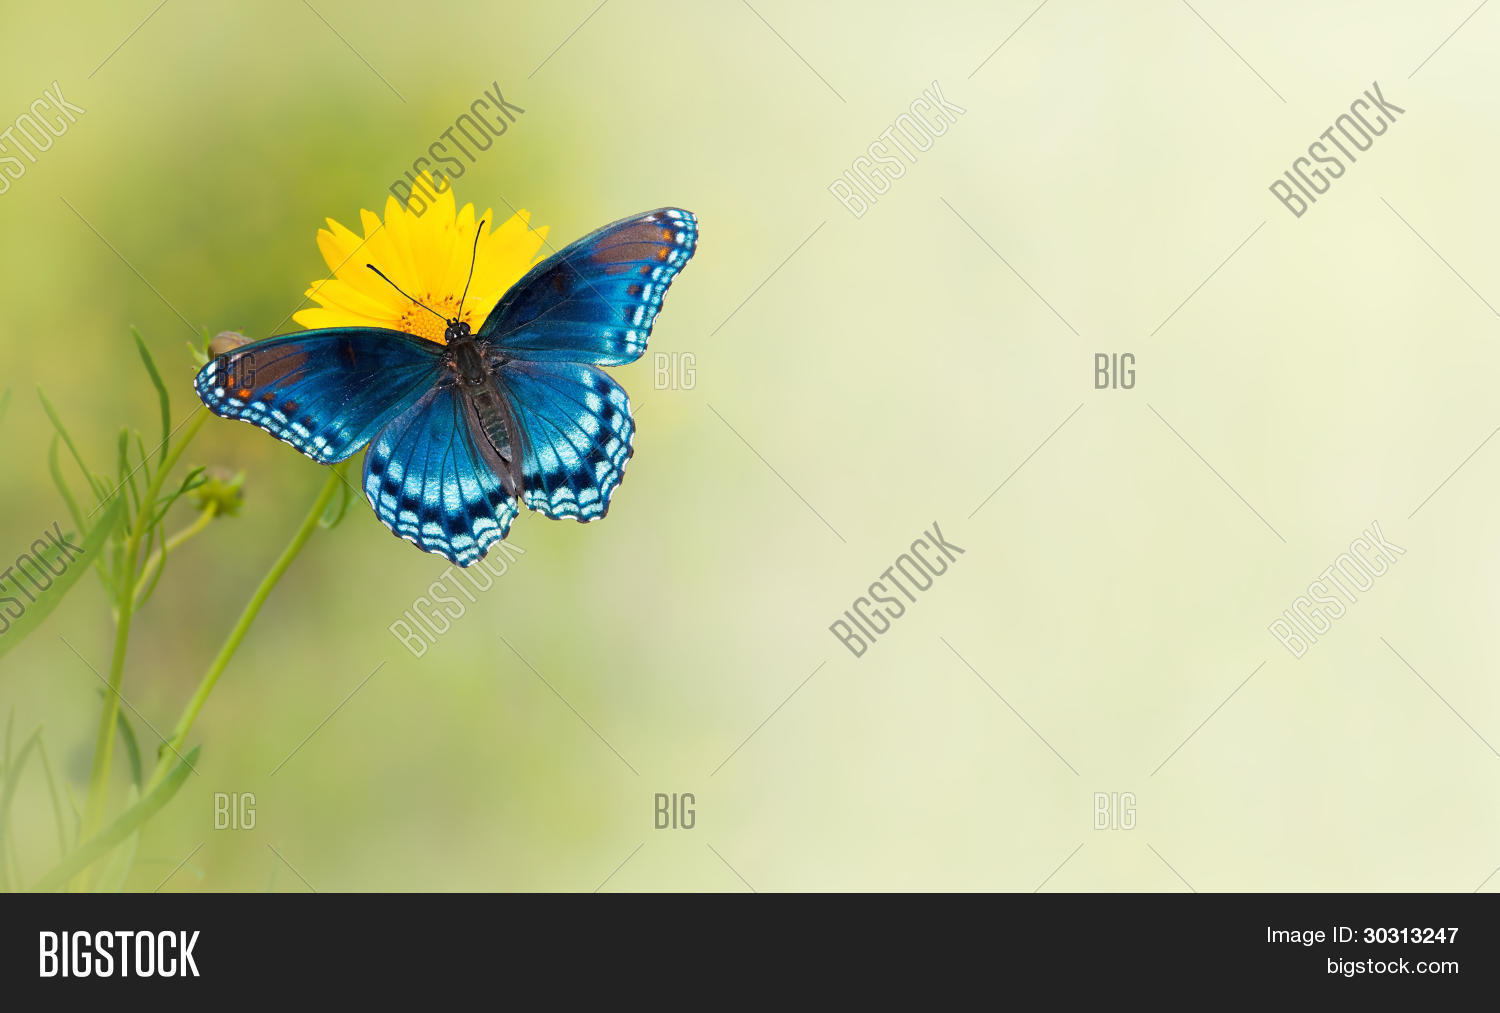 Blue Butterfly On Image & Photo (Free Trial) | Bigstock